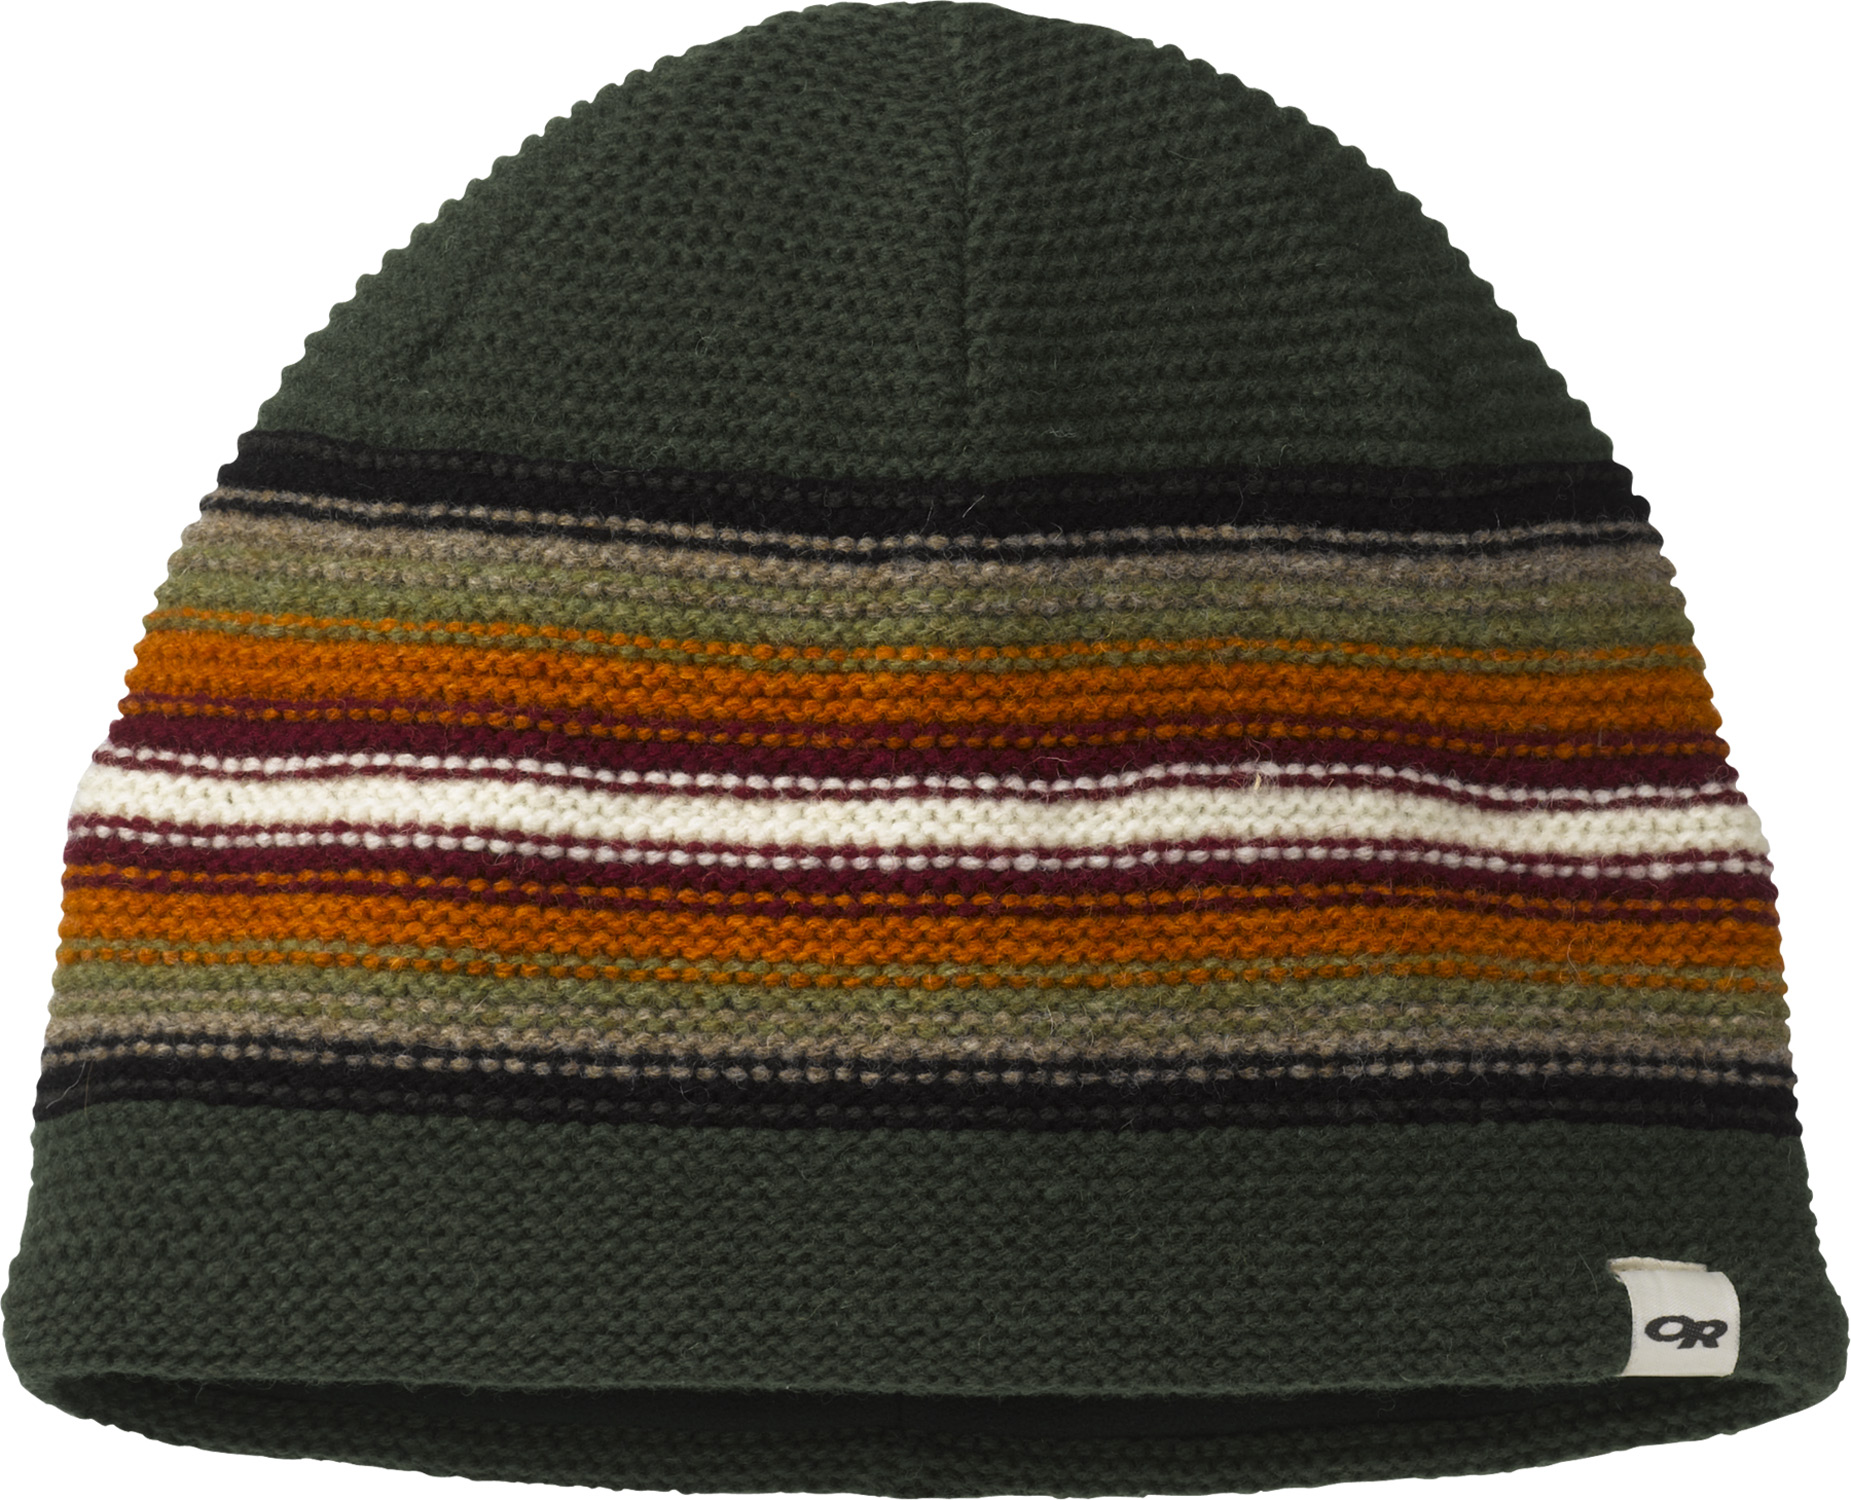 This Outdoor Research Spitsbergen Beanie is the cadillac of beanies. This fun looking and great to wear fleeced lined beanie will be your favorite to have on. With this Outdoor research spitsbergen beanie, there's no need to look anymore.Key Features of the Outdoor Research Spitsbergen Beanie: 100% wool WINDSTOPPER Technical Fleece lined ear band - $22.95